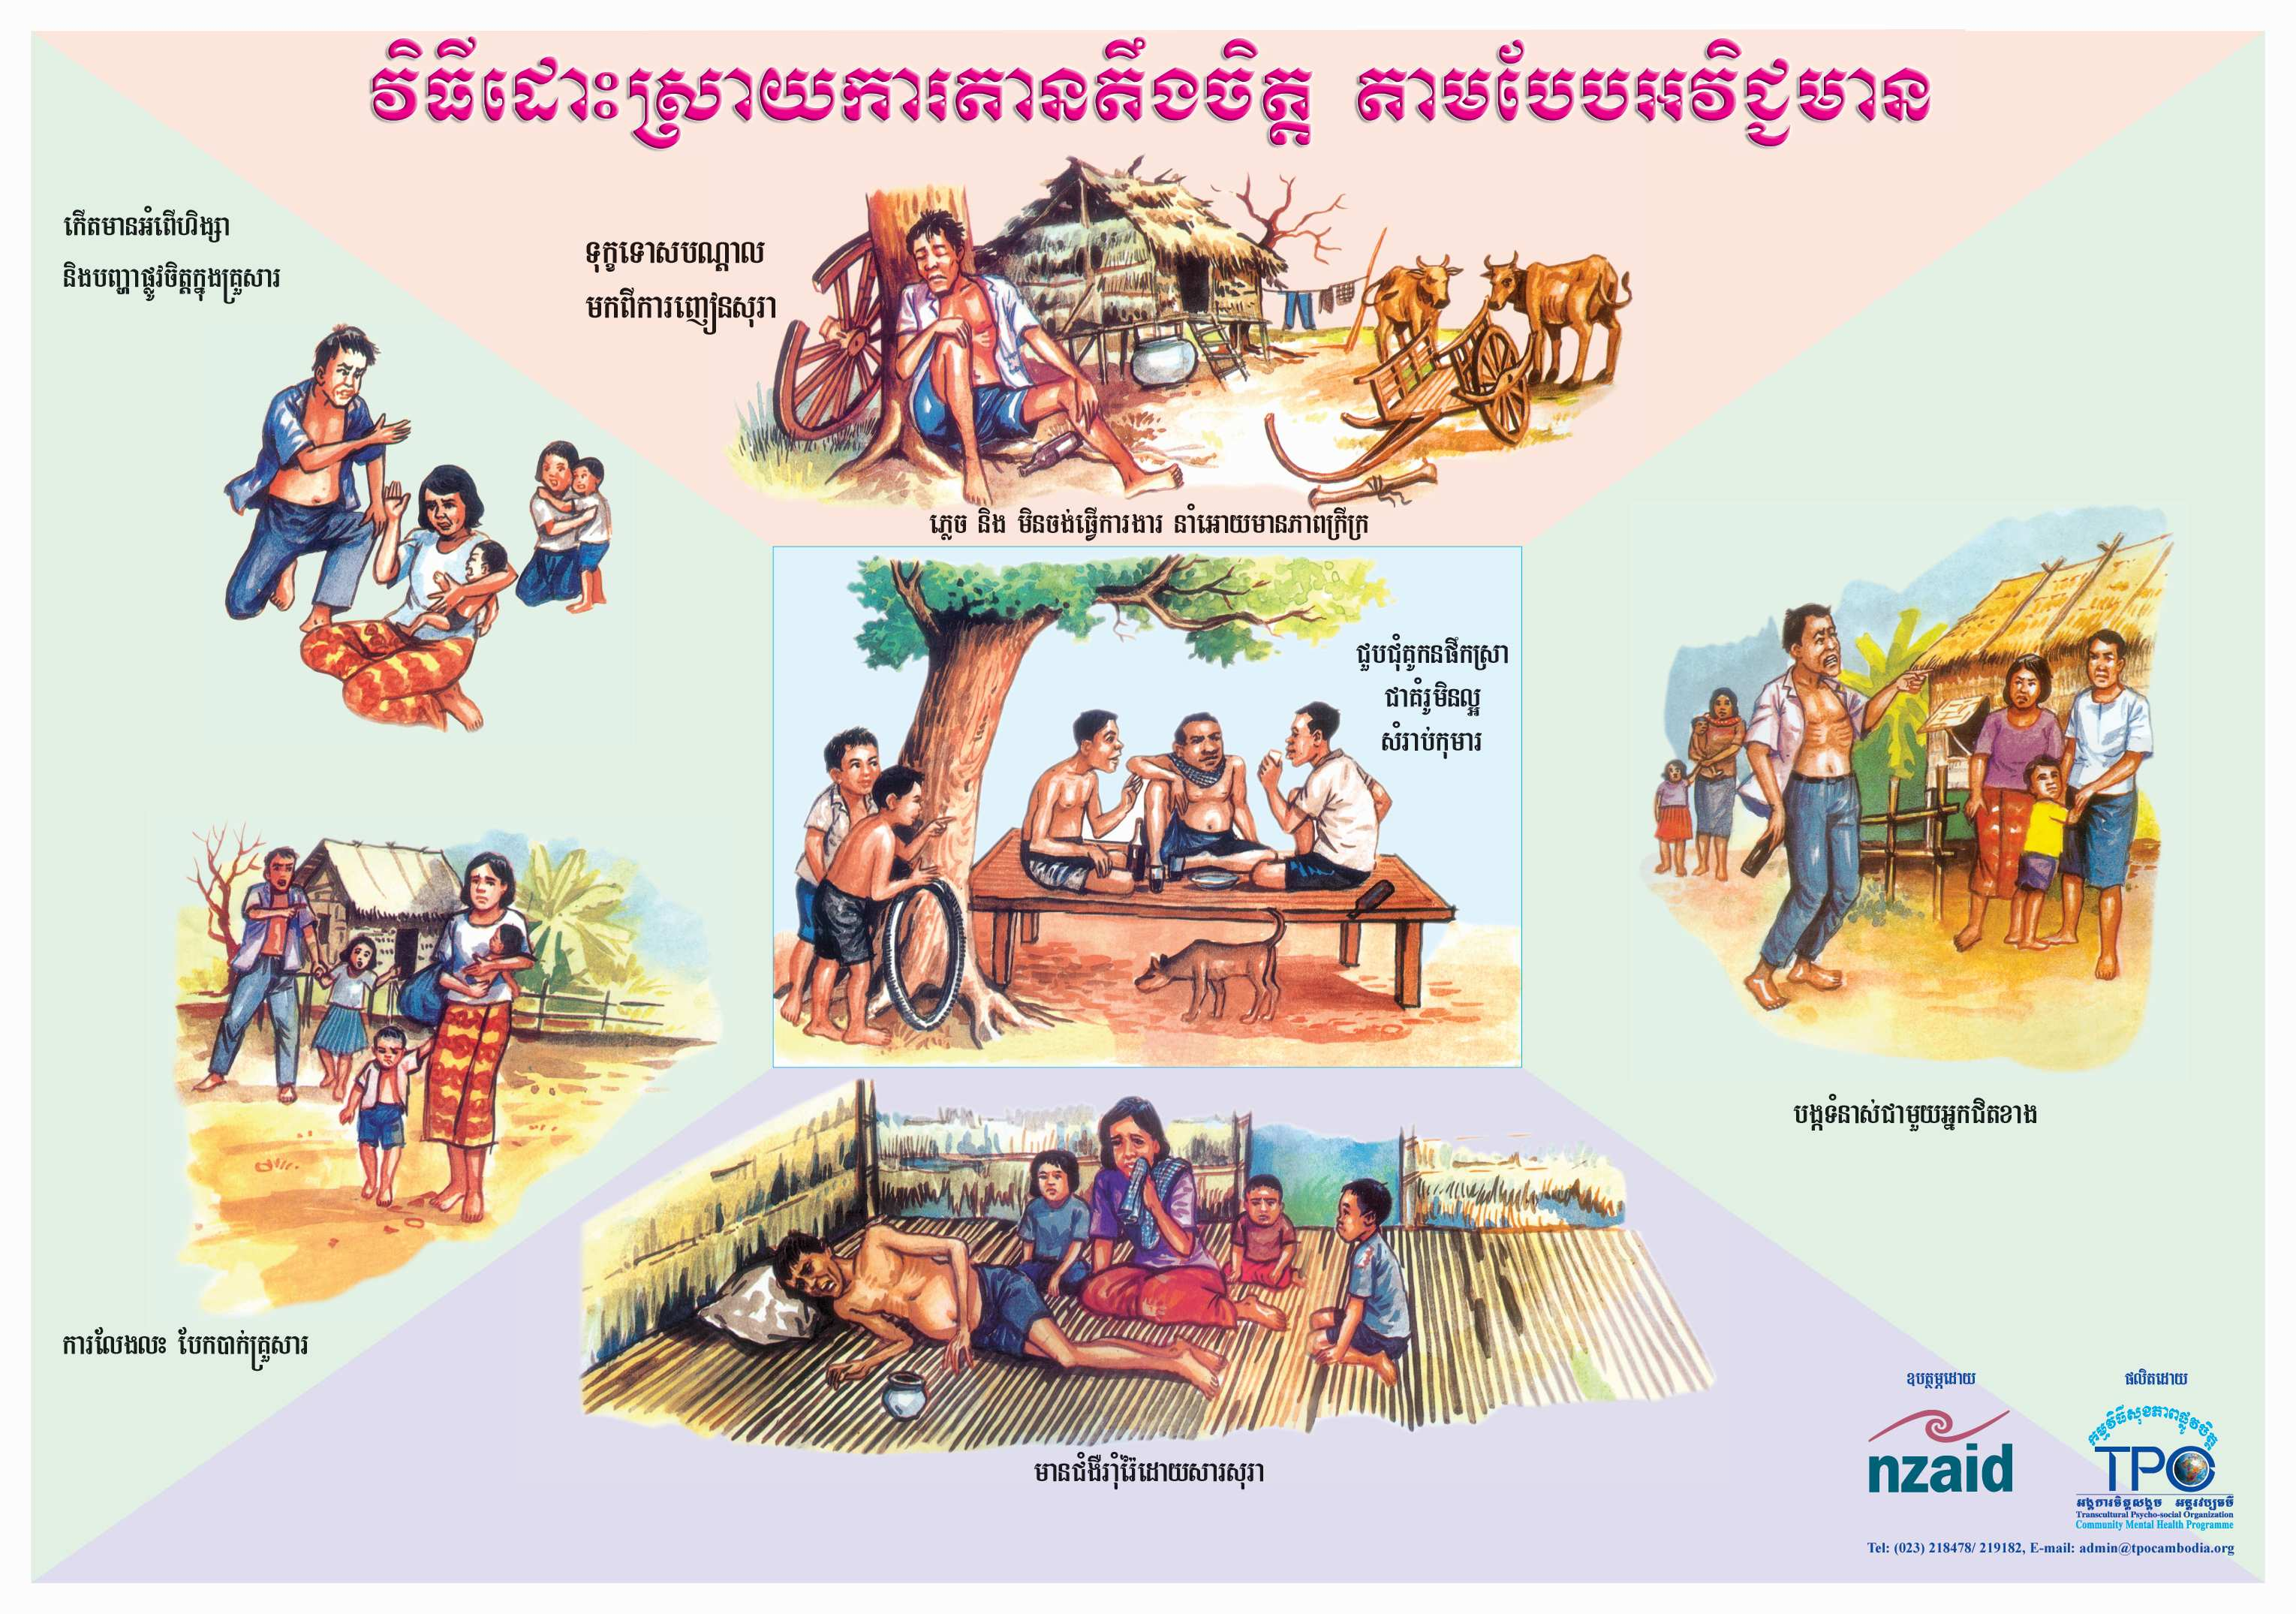 Poster-Negative way in dealing with stress-Khmer